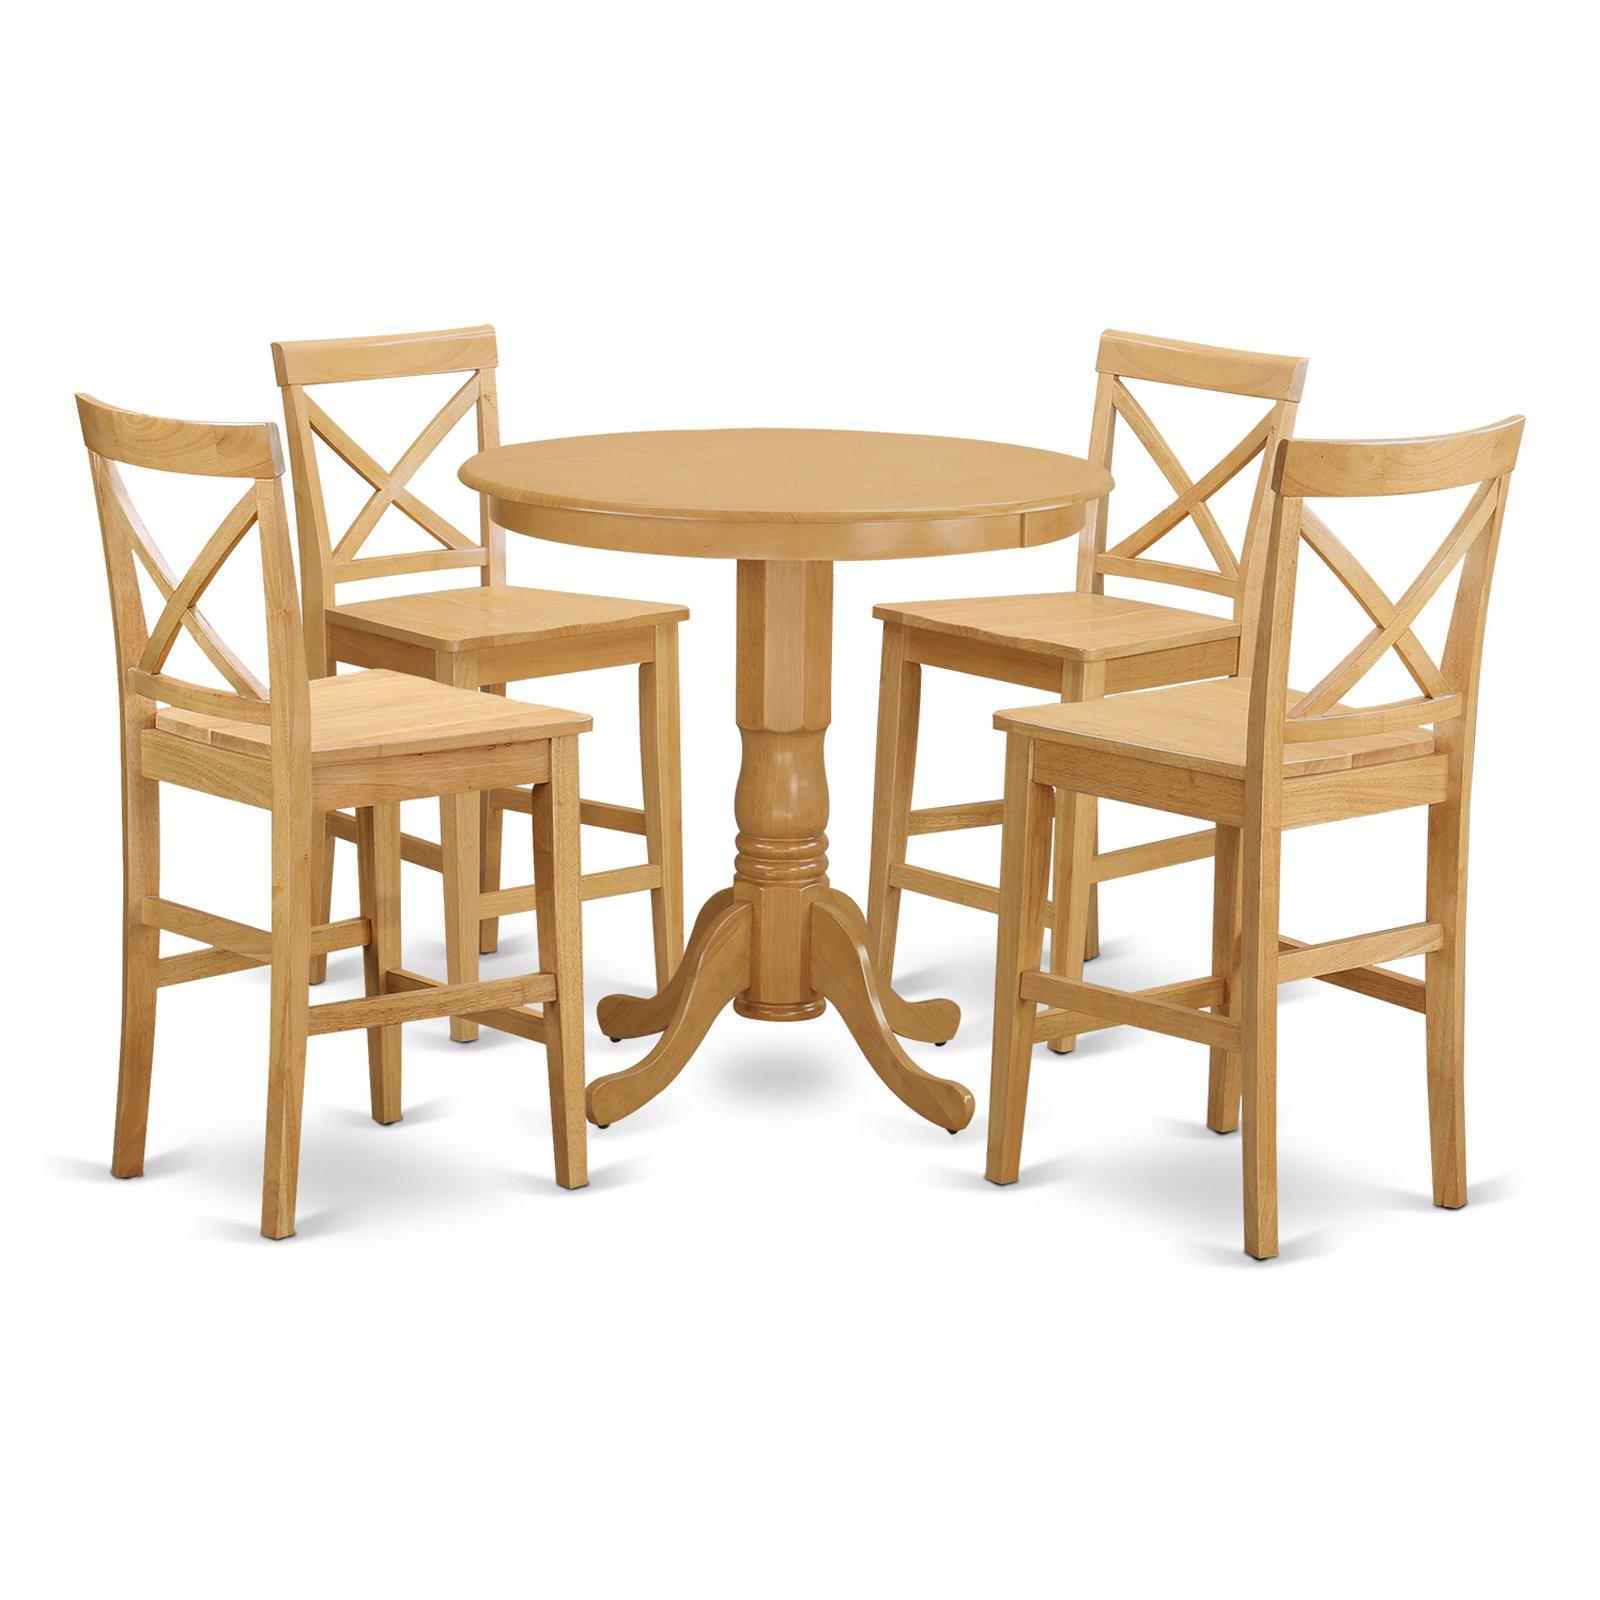 East West Furniture Jackson 5 Piece High Cross Dining Table Set